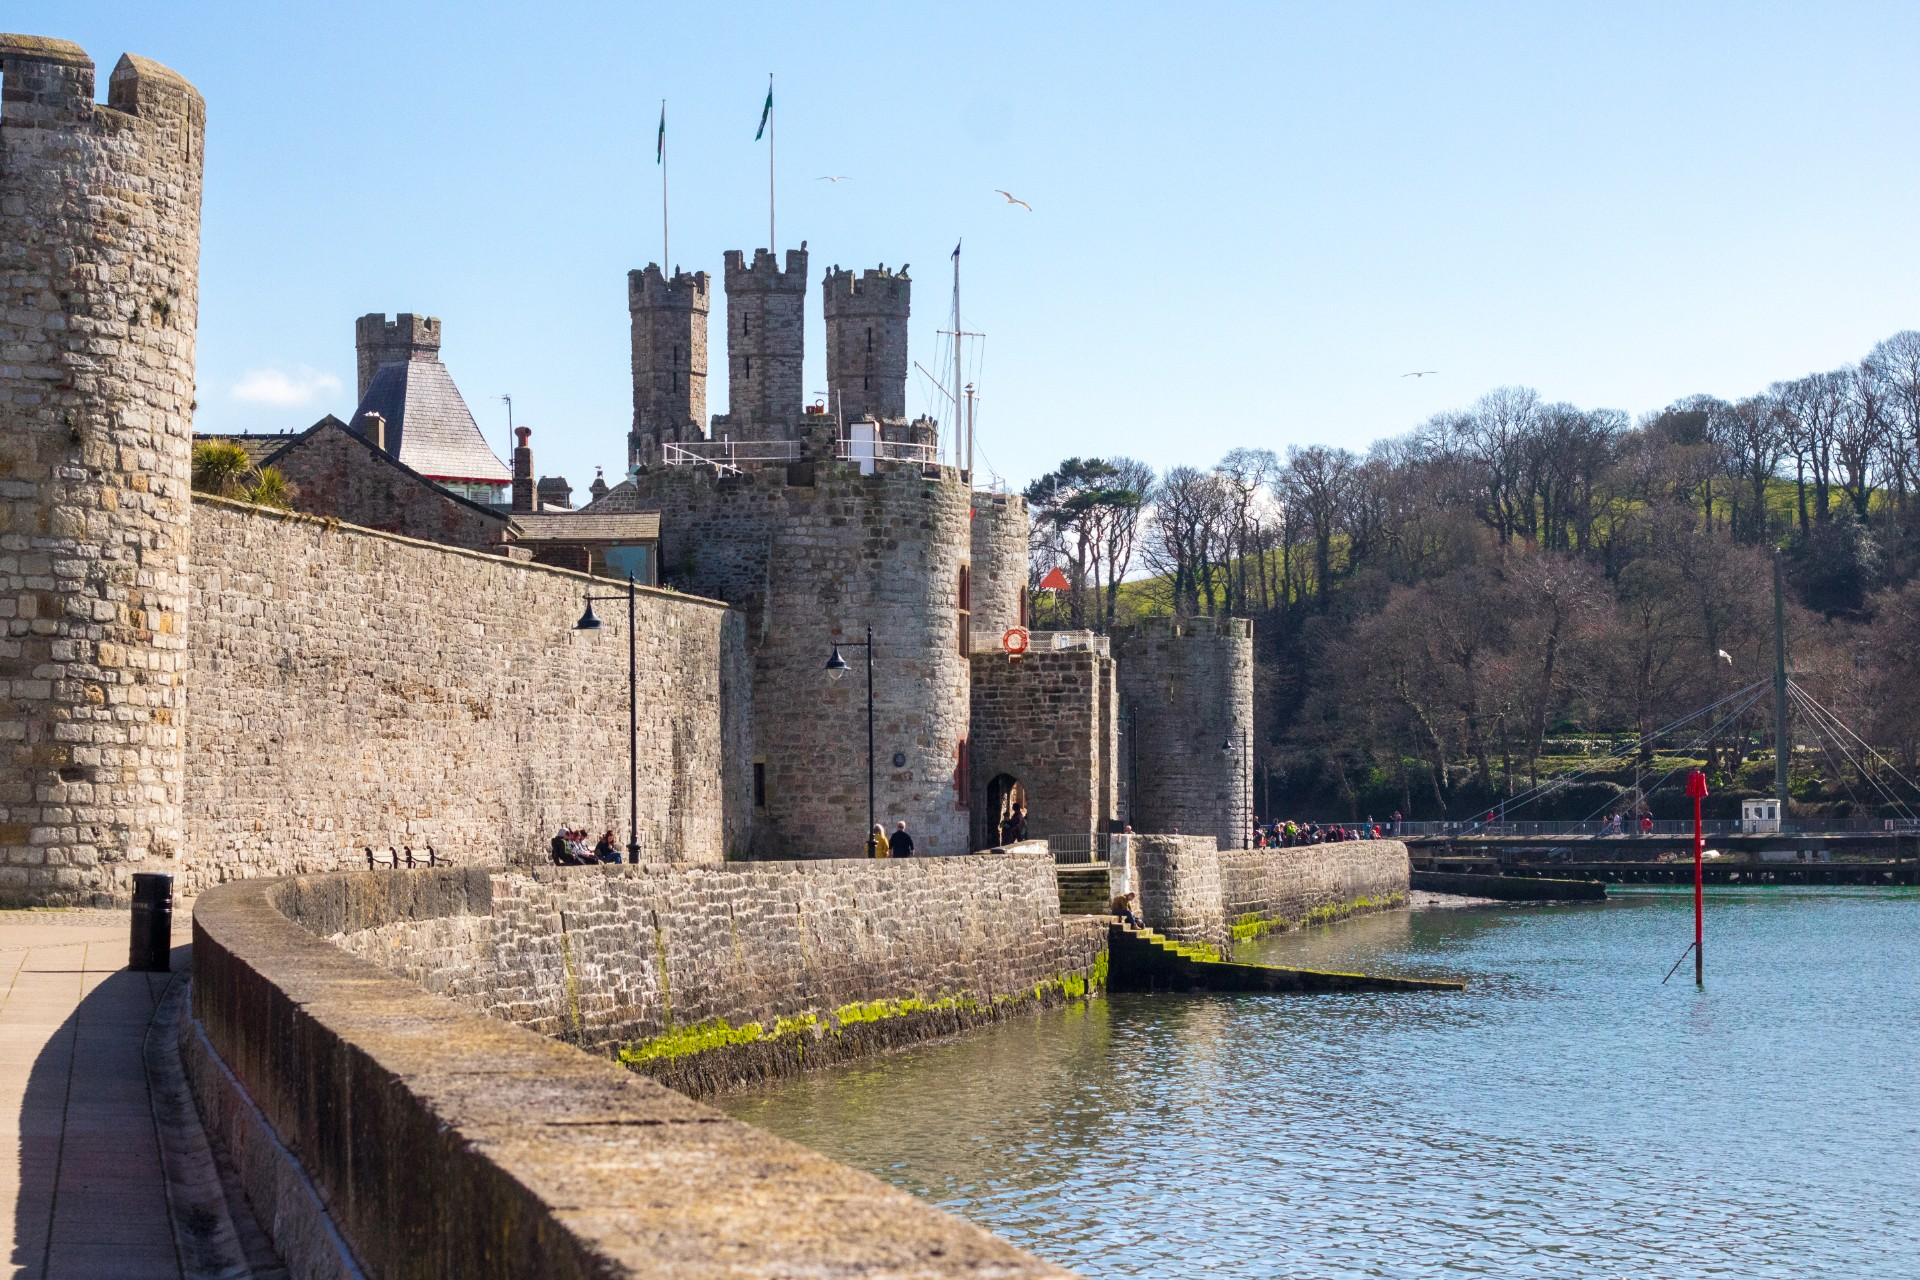 Caernarfon Castle. Welsh castles. An Adventurous Weekend in North Wales. What to see and do in North Wales in just 48 hours. North Wales weekend guide travel blog. Snowdonia National Park, Zip World, Velocity, Bounce Below, Criccieth, Portmeirion, Caernarfon, Pwlhelli. Click through to read more...